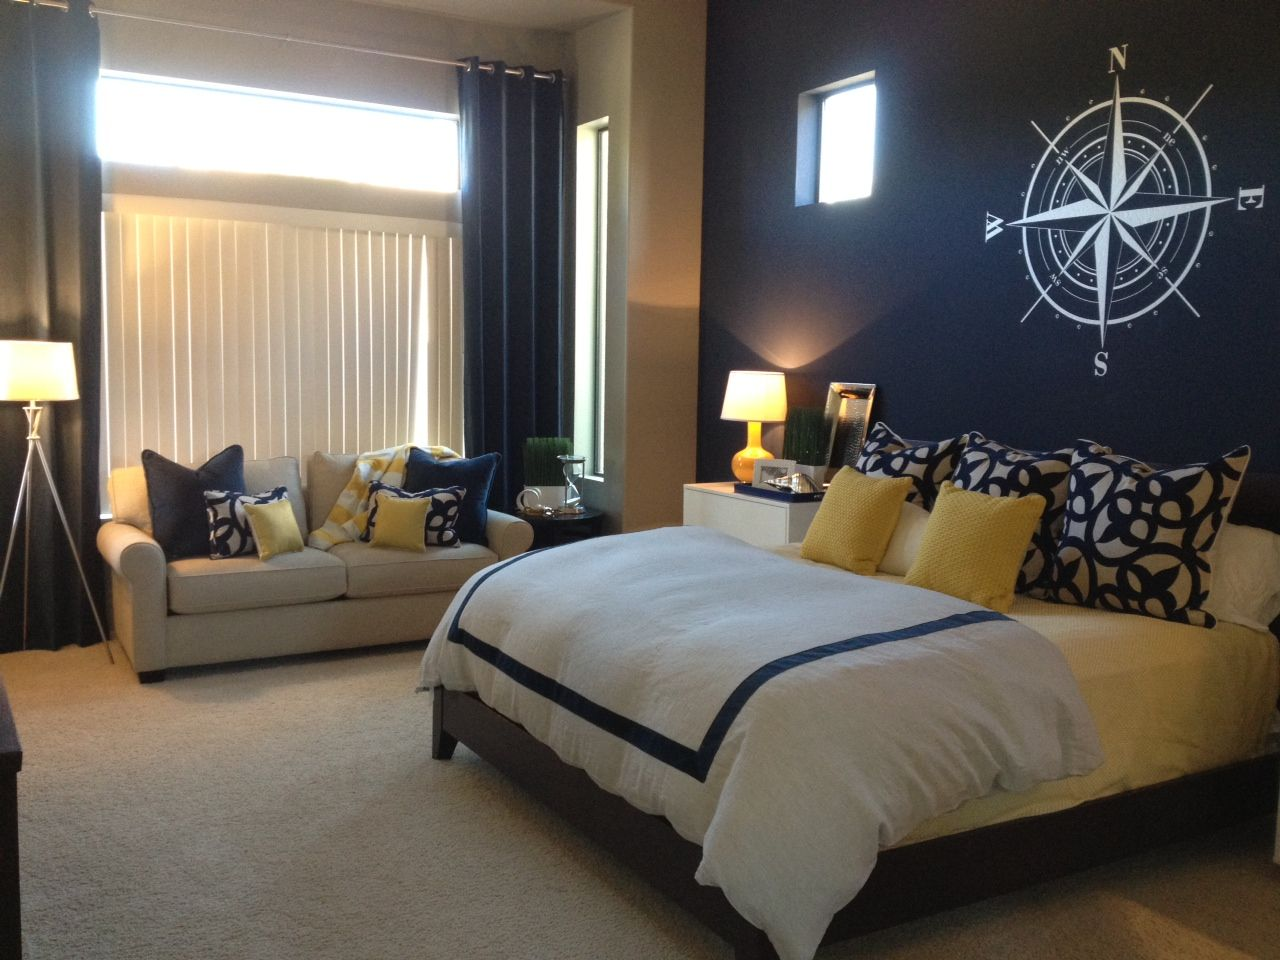 Bedroom Nautical Decor The Magnificent Rooms That Look Luxurious With Equipped Sofas